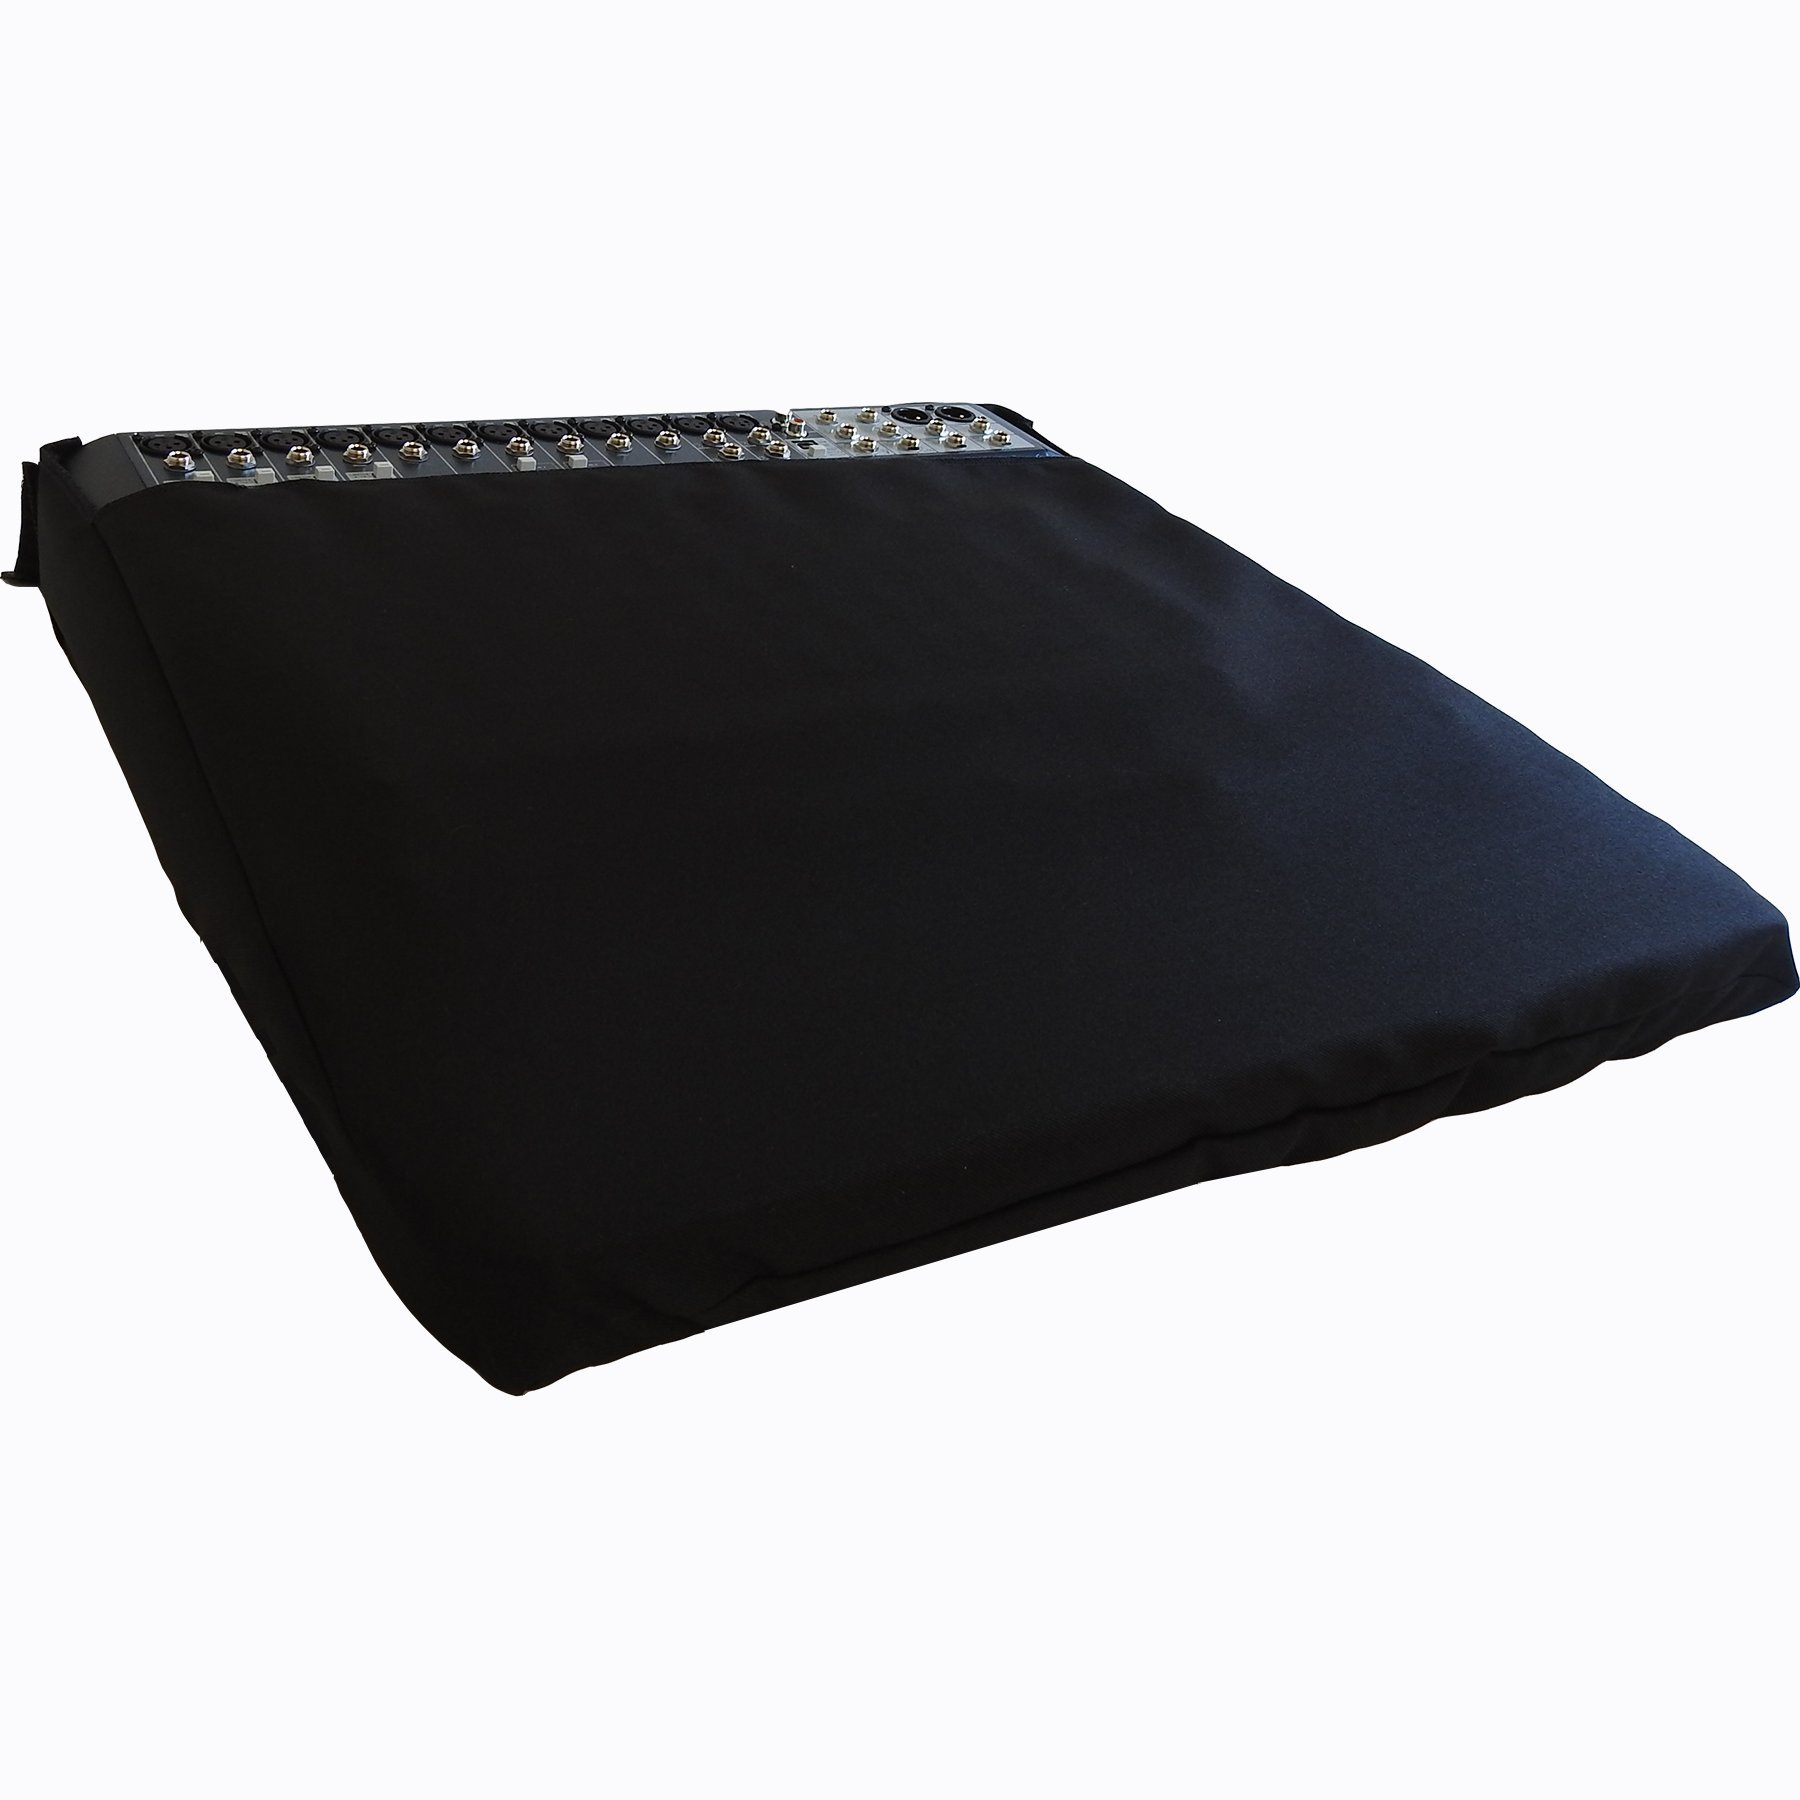 DCFY Soundcraft Mixer Dust Cover | Signature 22 MTK | Black Water-Proof by Dust Covers For You!